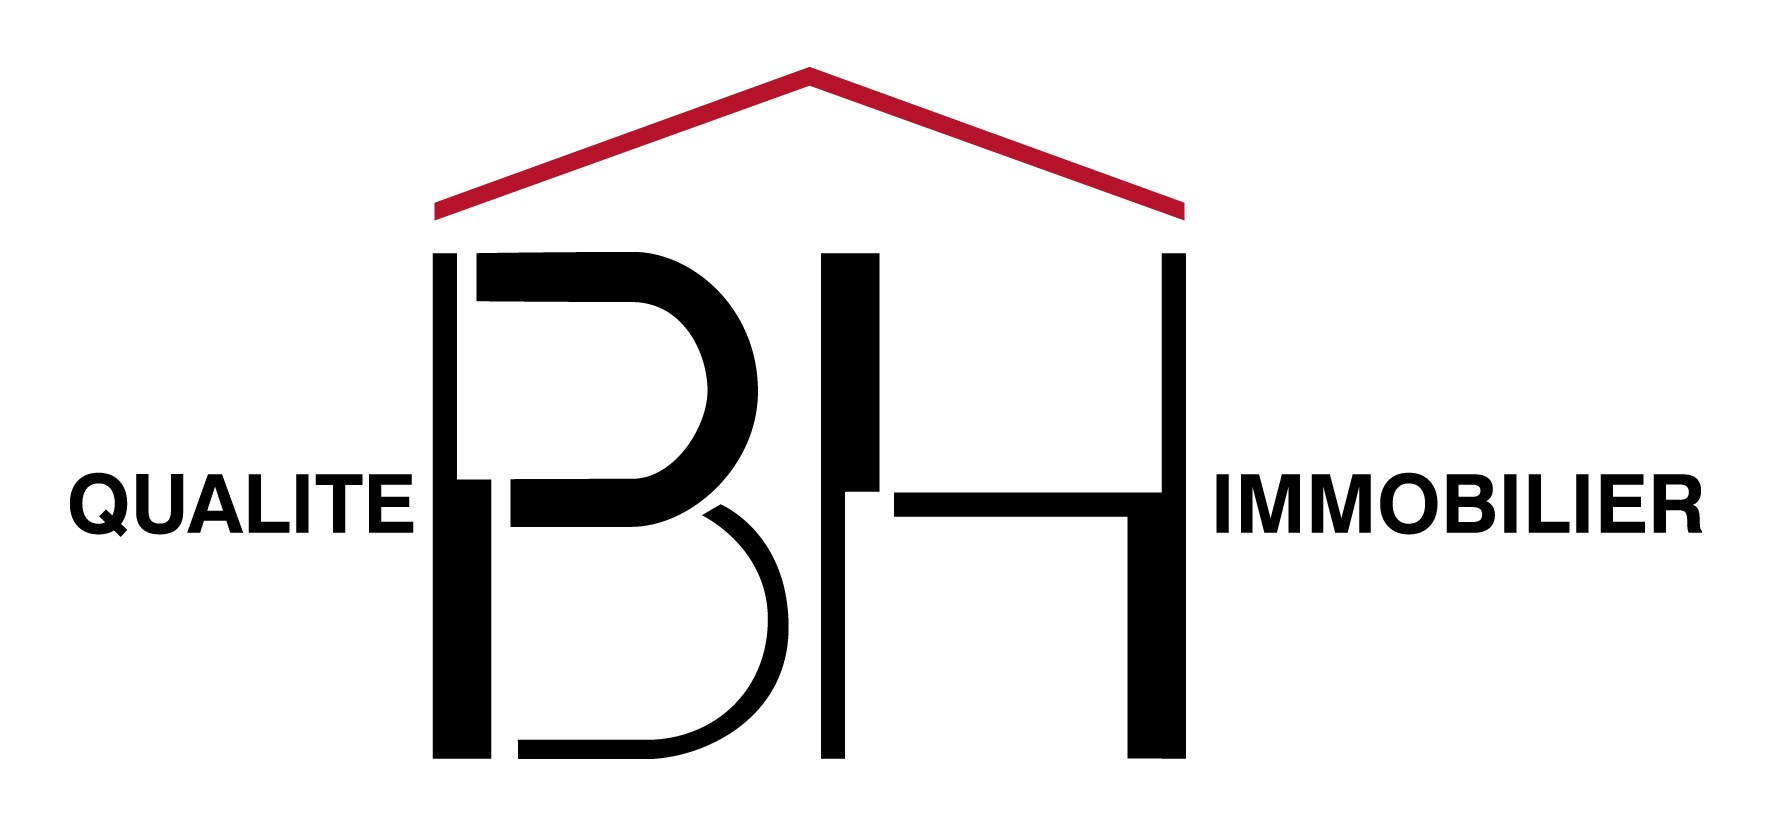 QUALITE BH IMMOBILIER